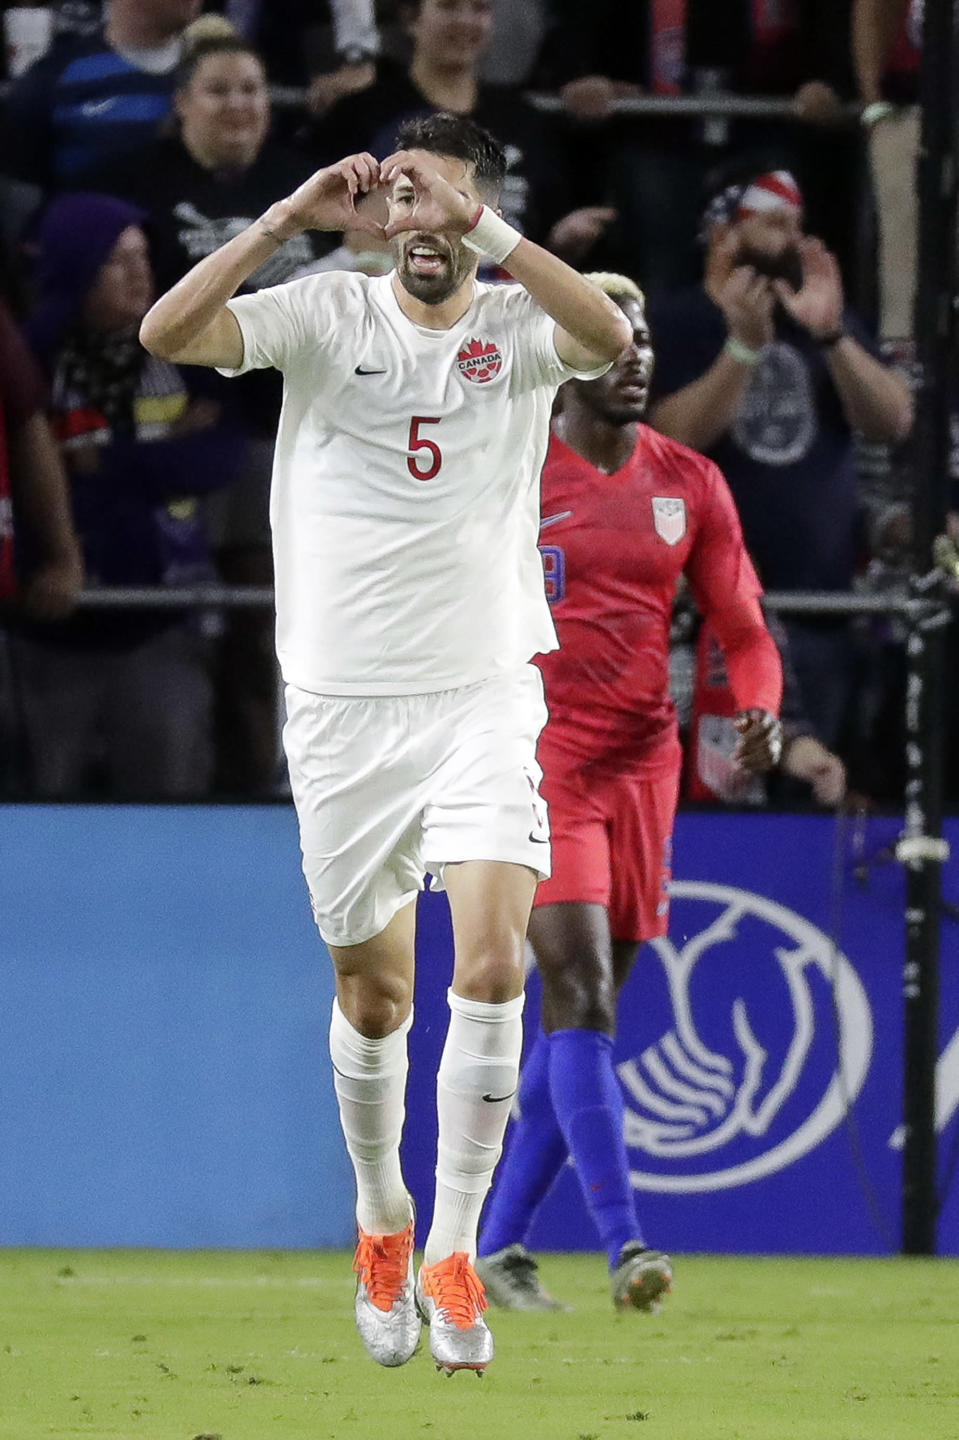 Canada defender Steven Vitoria (5) makes a heart shape with his hands after scoring a goal against the United States during the second half of a CONCACAF Nations League soccer match Friday, Nov. 15, 2019, in Orlando, Fla. (AP Photo/John Raoux)